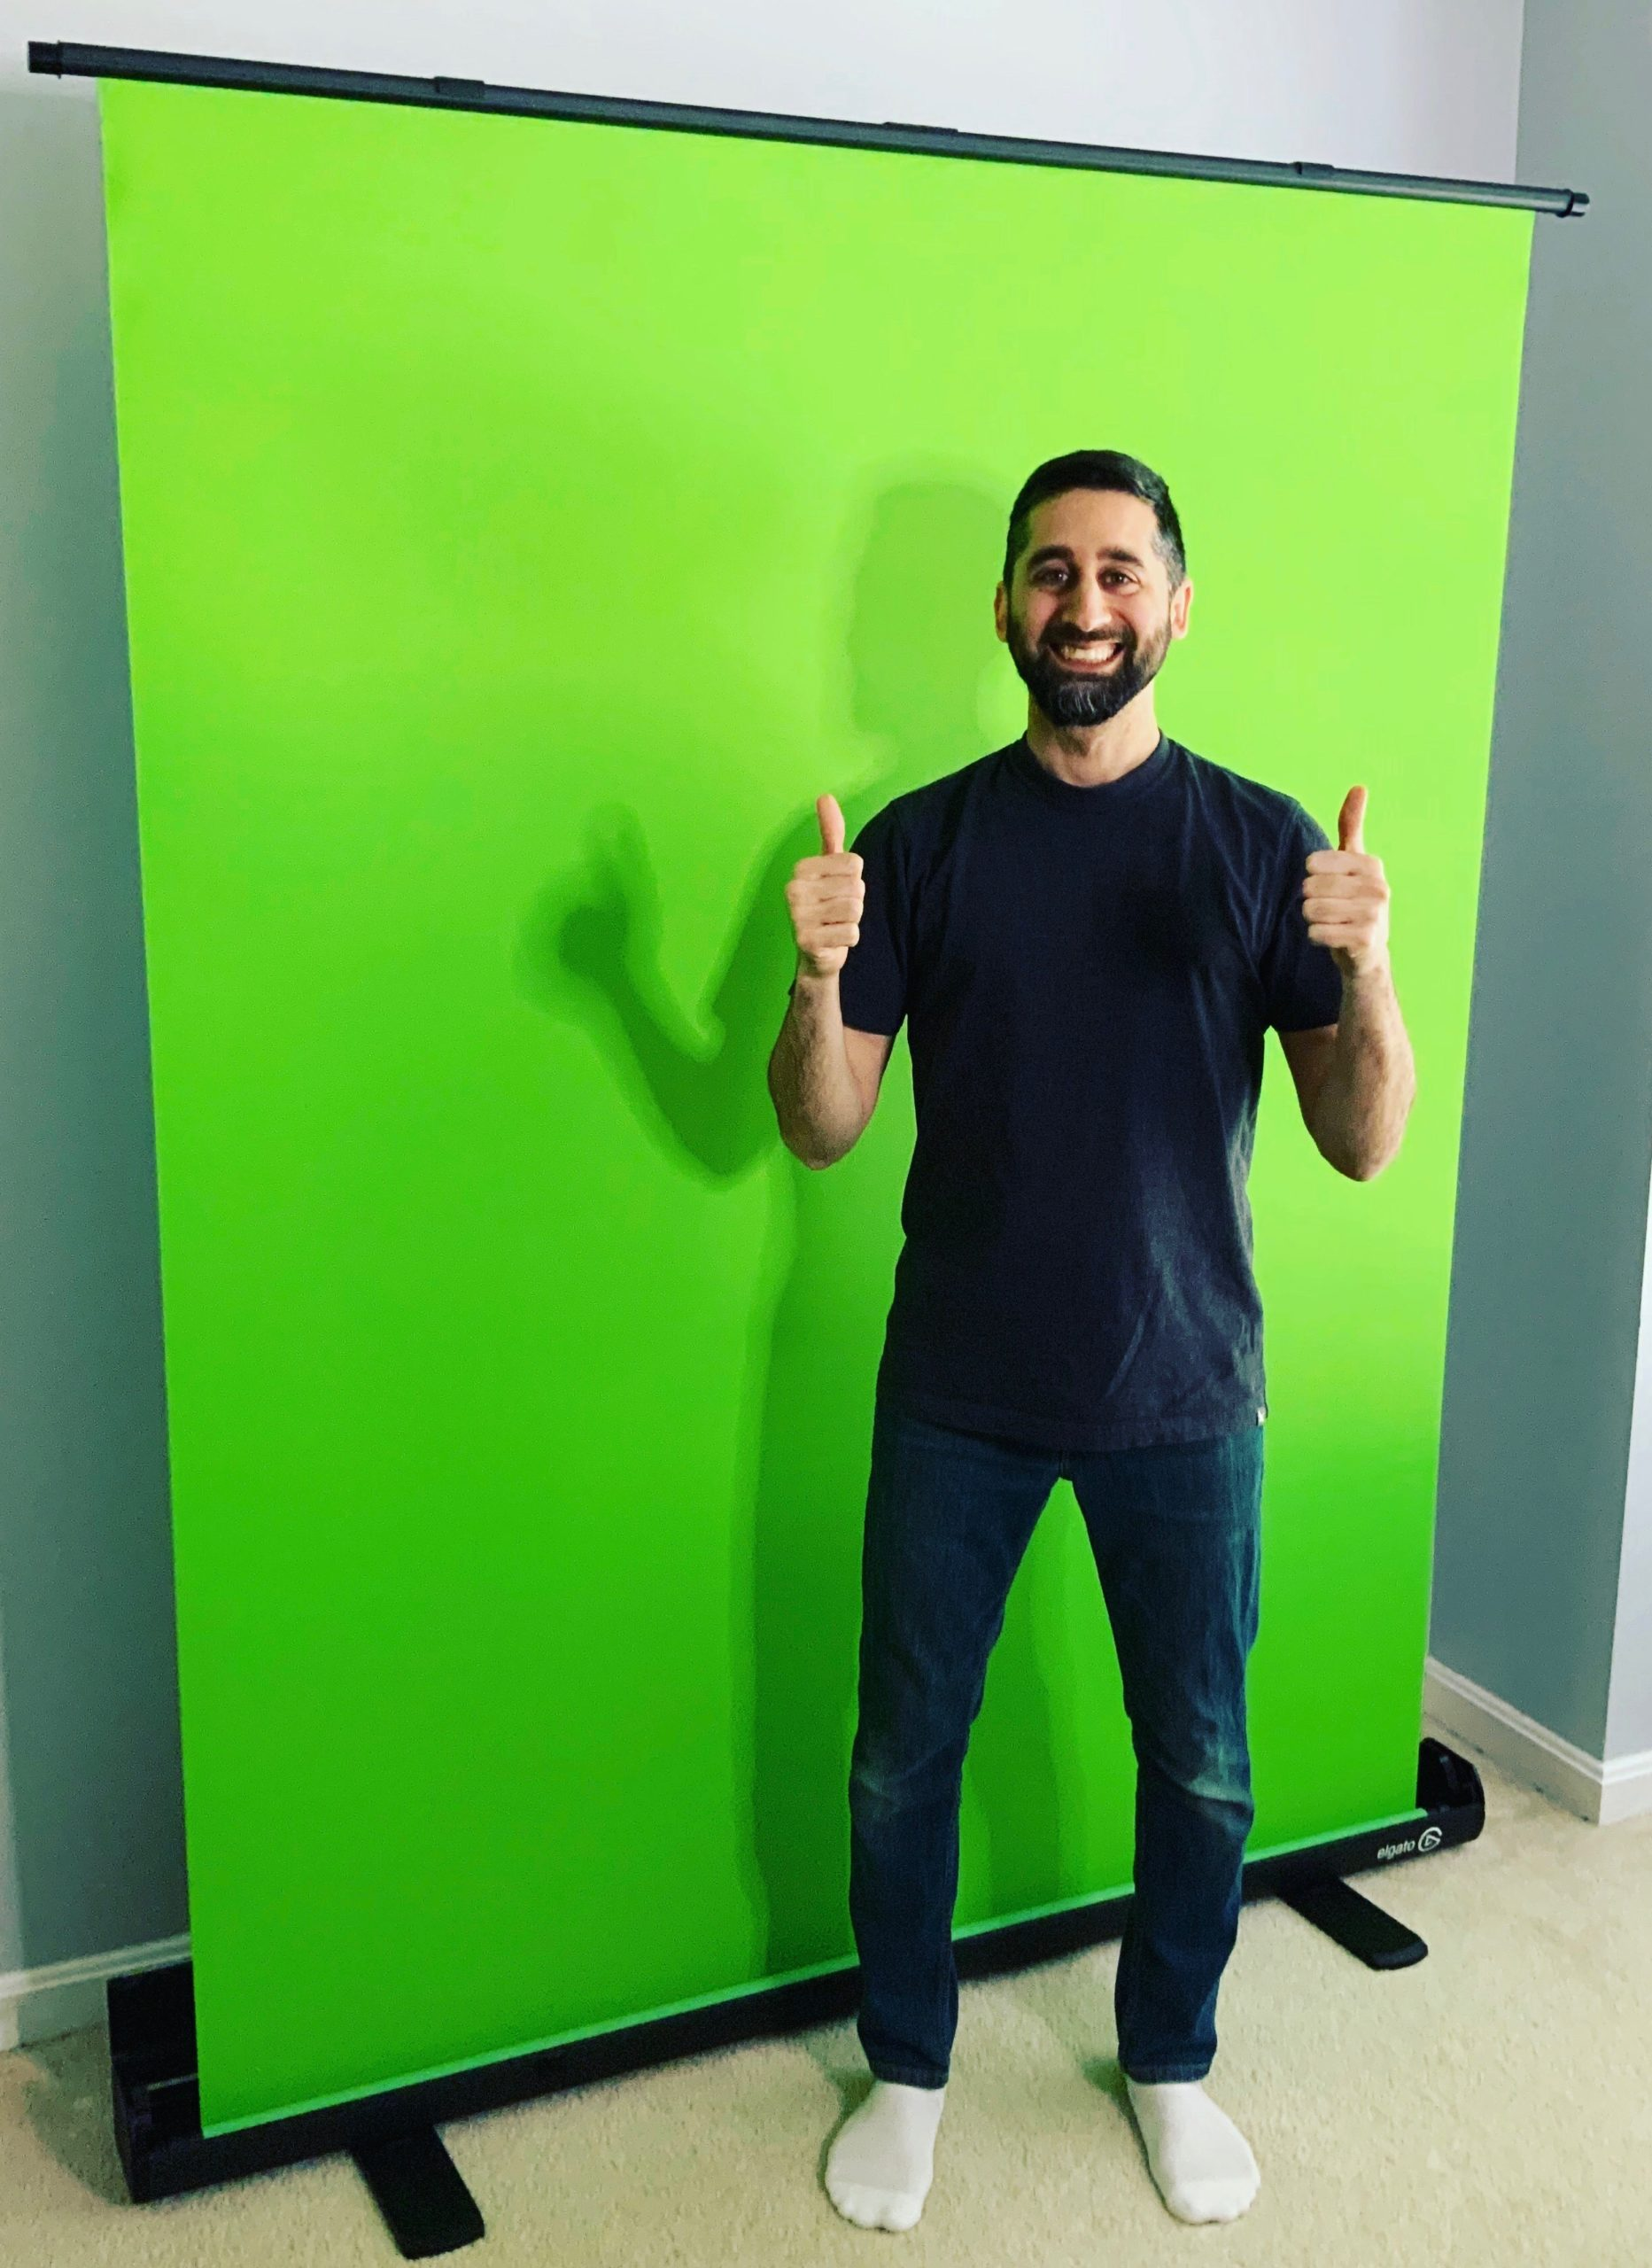 Me and the green screen